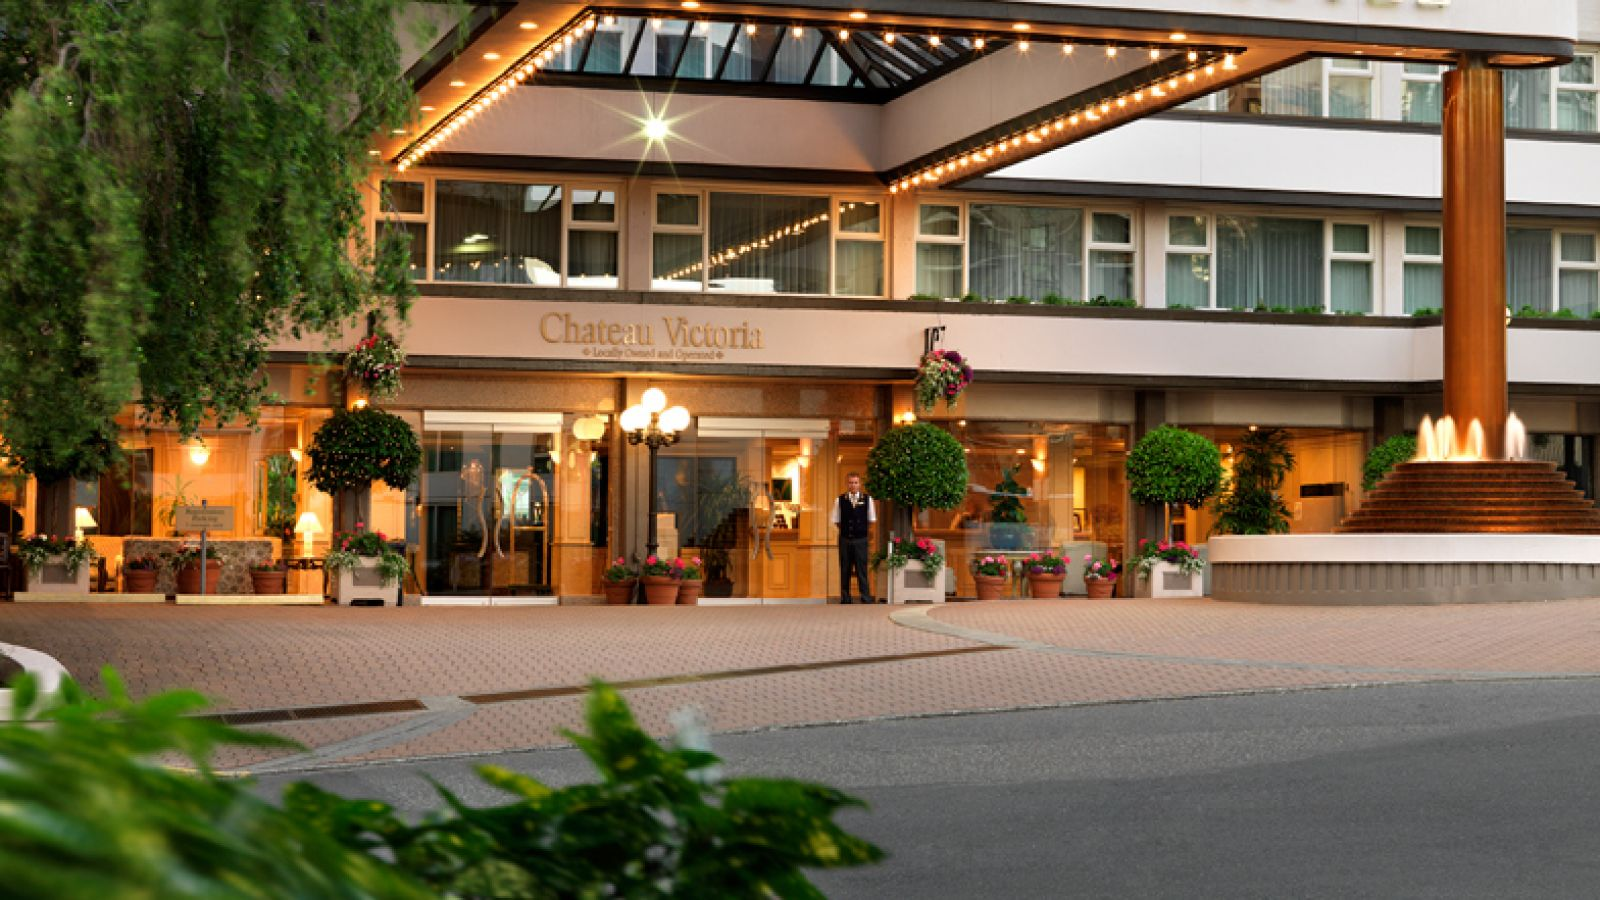 Chateau Victoria Hotel and Suites - Vancouver Island golf packages